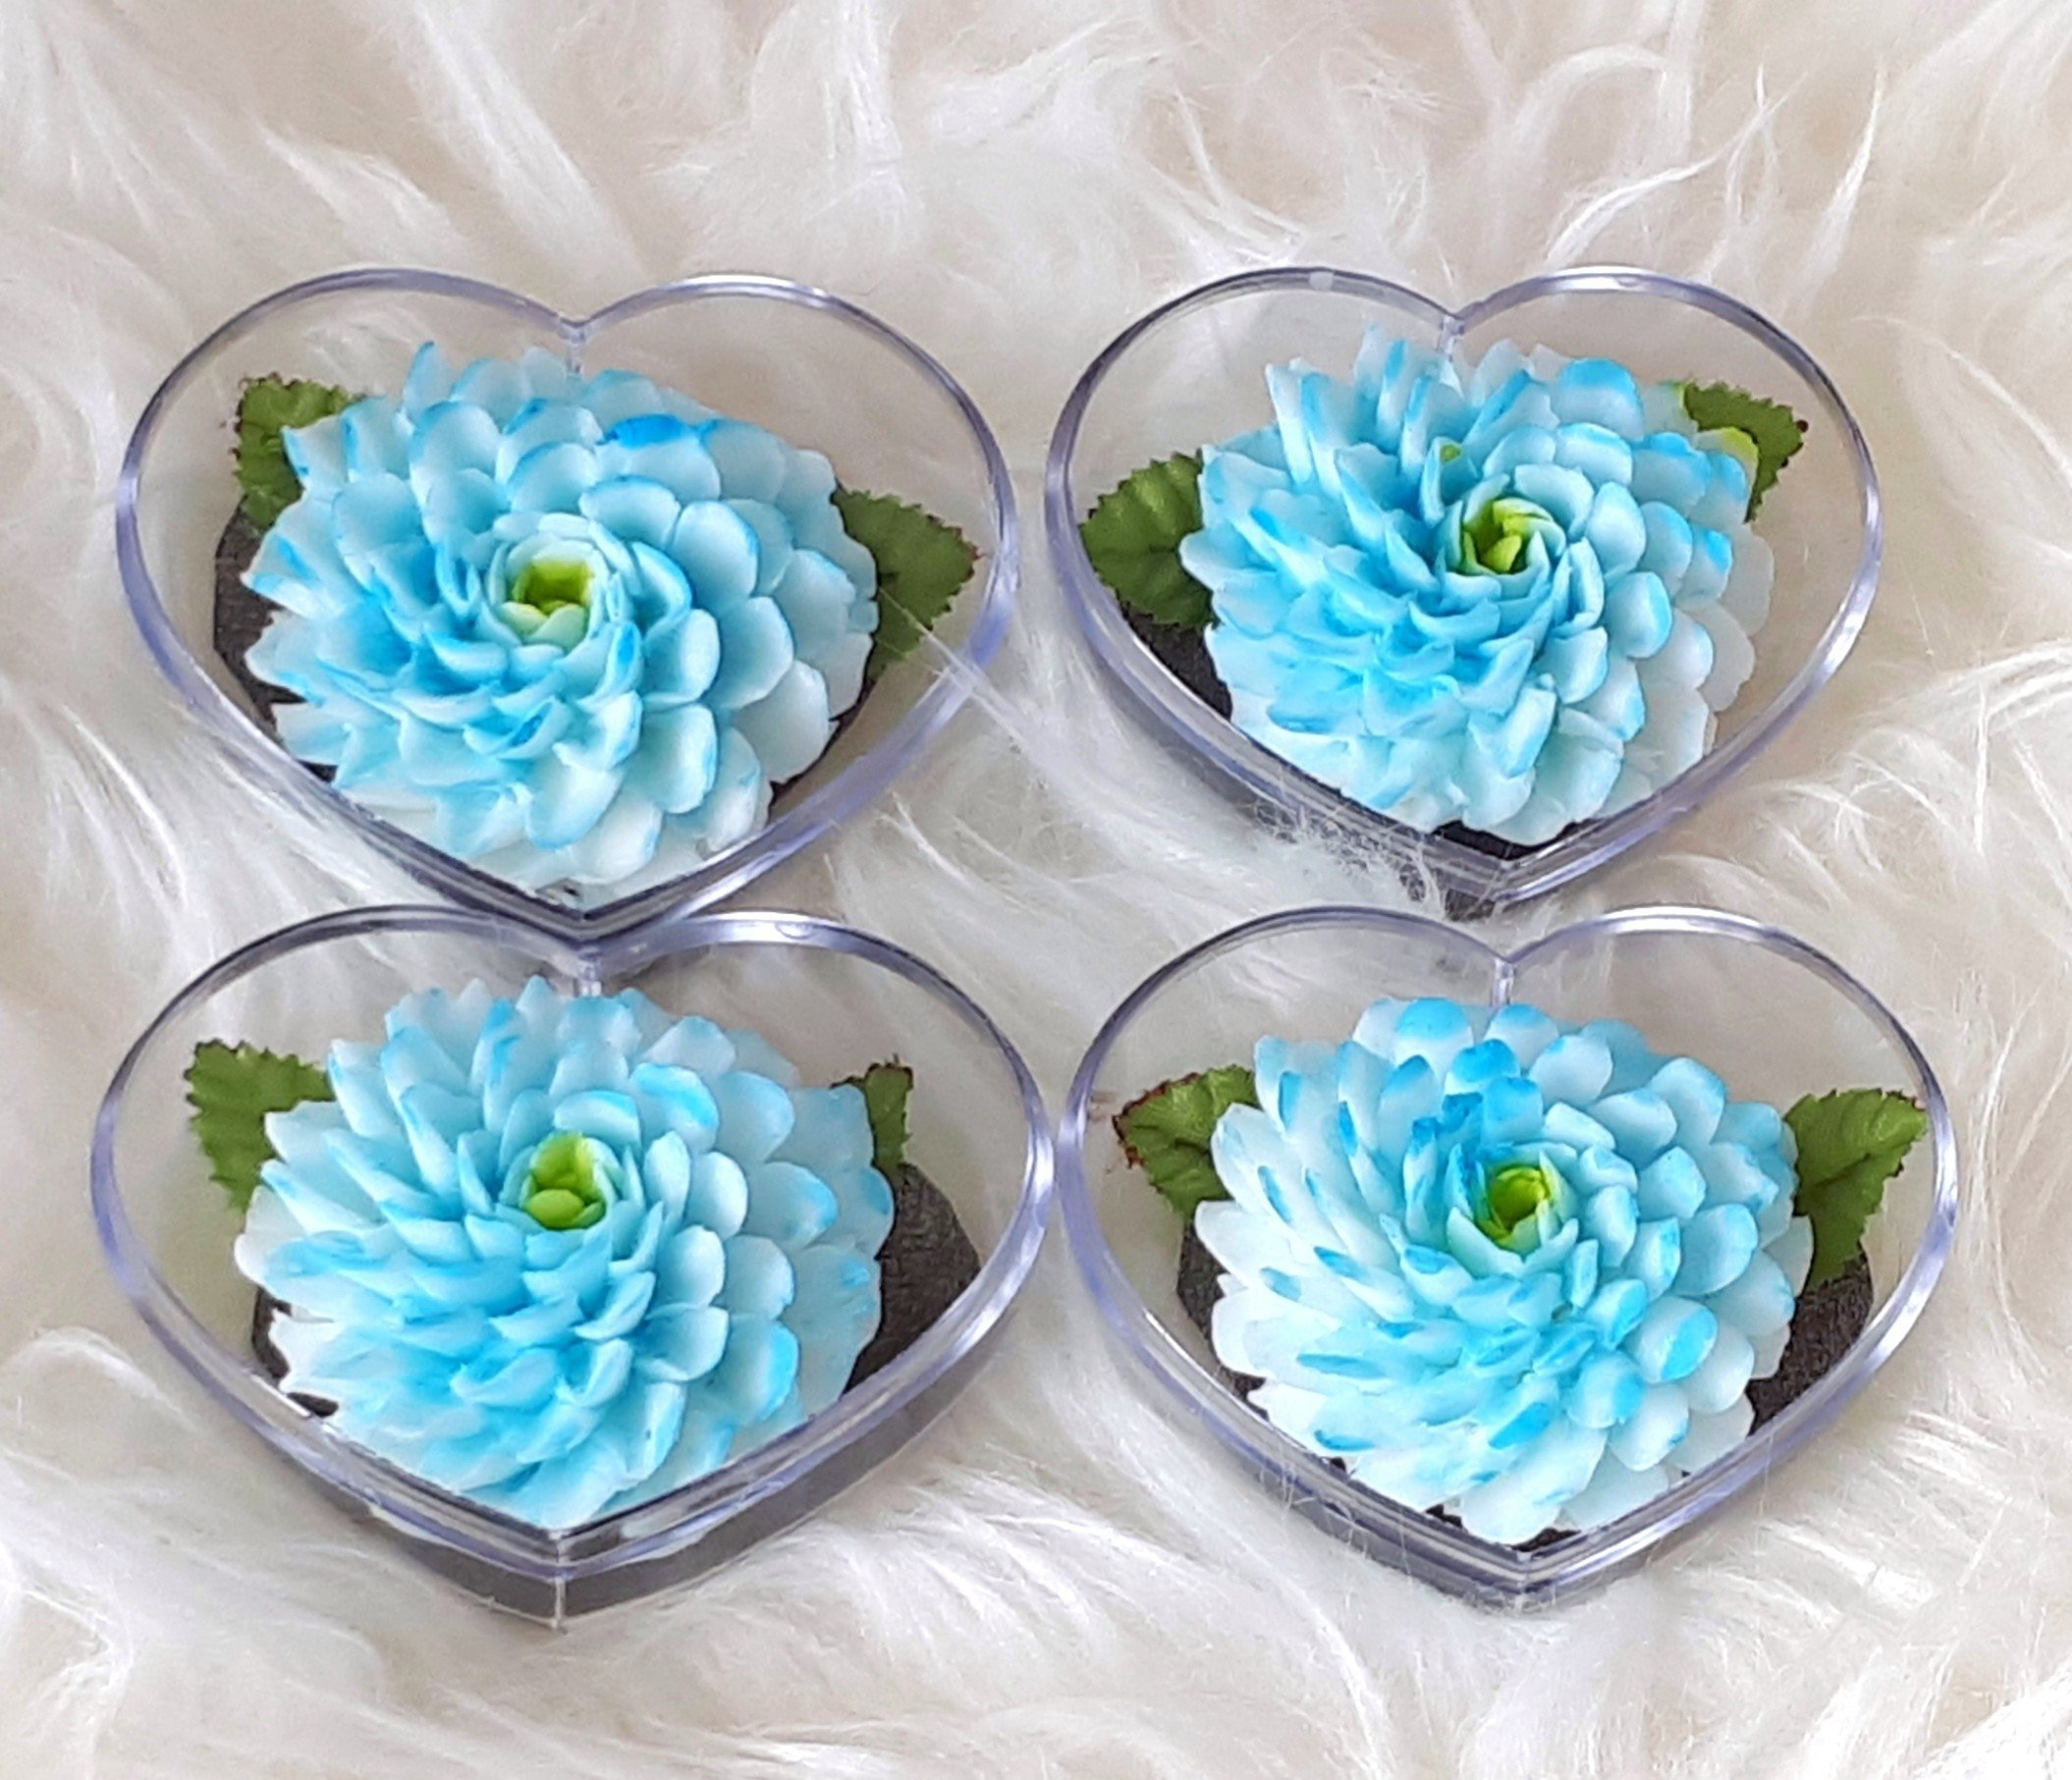 Blue Zinnia Set of 4 Hand Carved Decorative Soaps with Jasmine Aroma Essential Oil, Handmade Flower Soap Carving by Thai Artisan